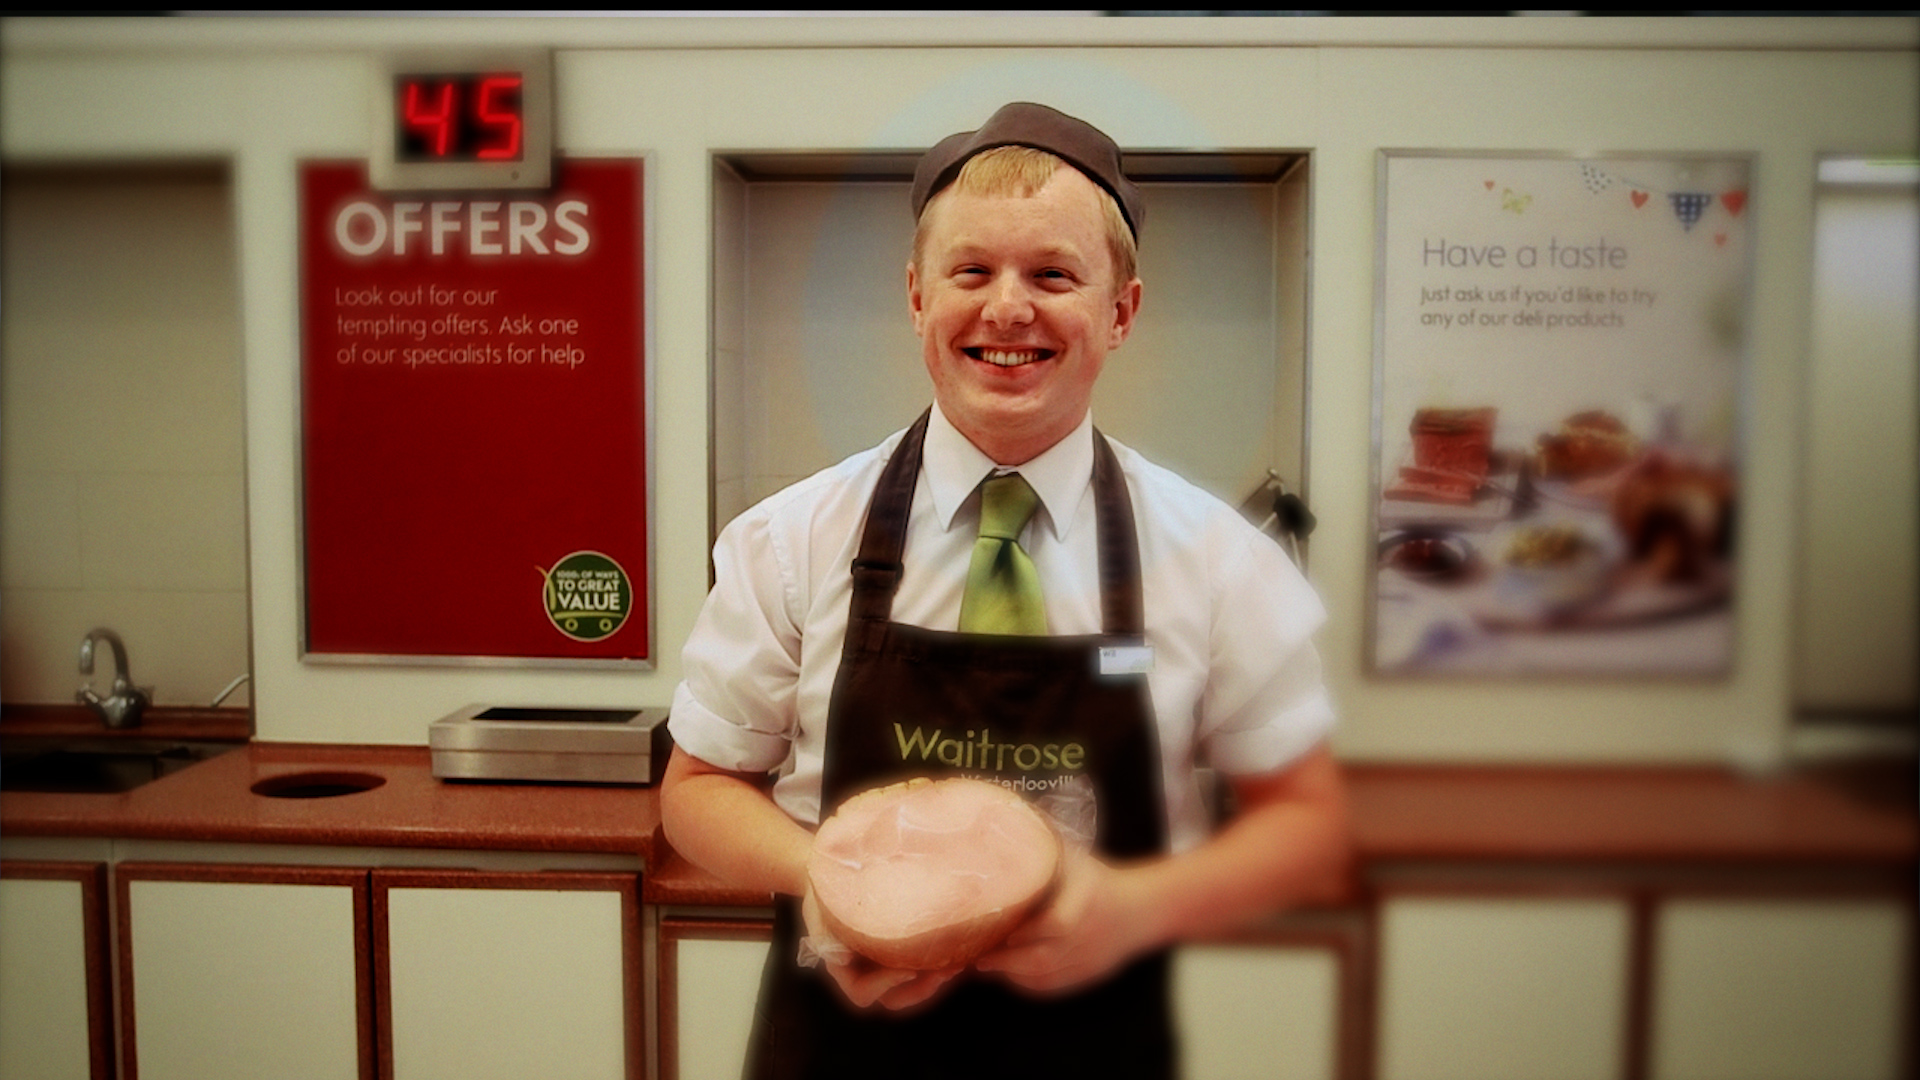 Waitrose fusion tilling creative - Waitrose head office telephone number ...